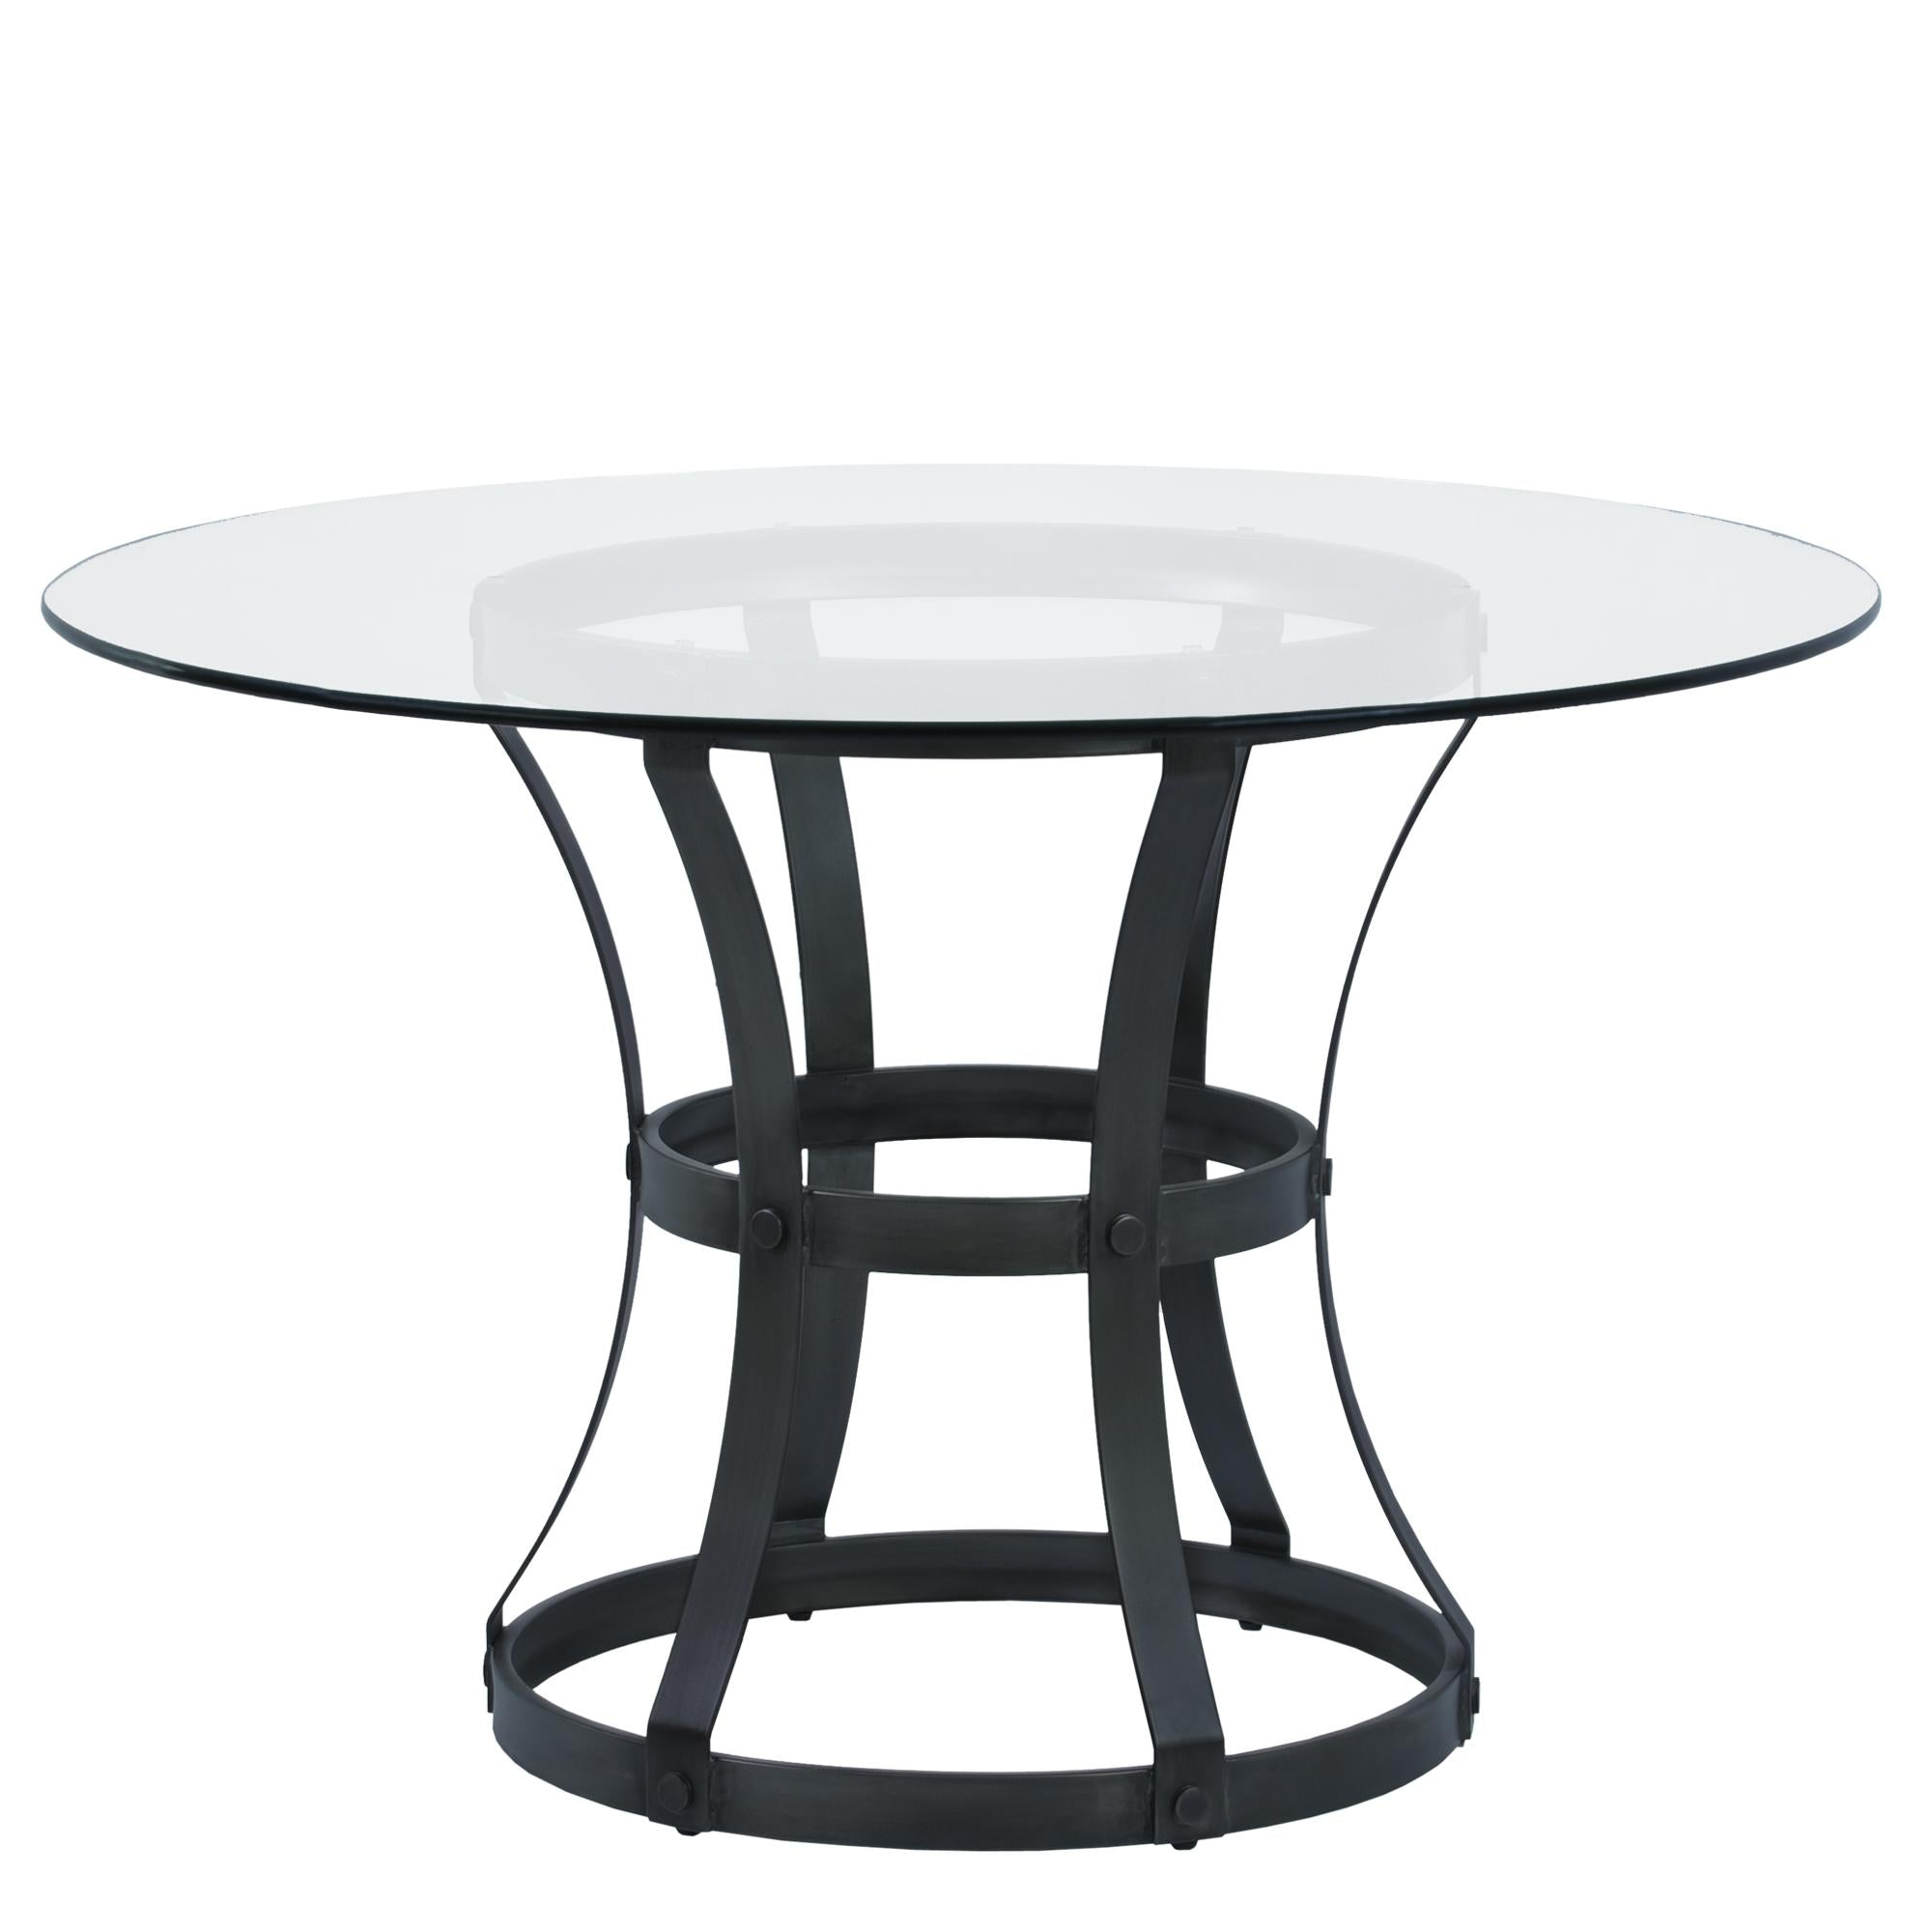 Armen Living Vancouver Round Dining Table in Mineral Finish and 48' Glass Top